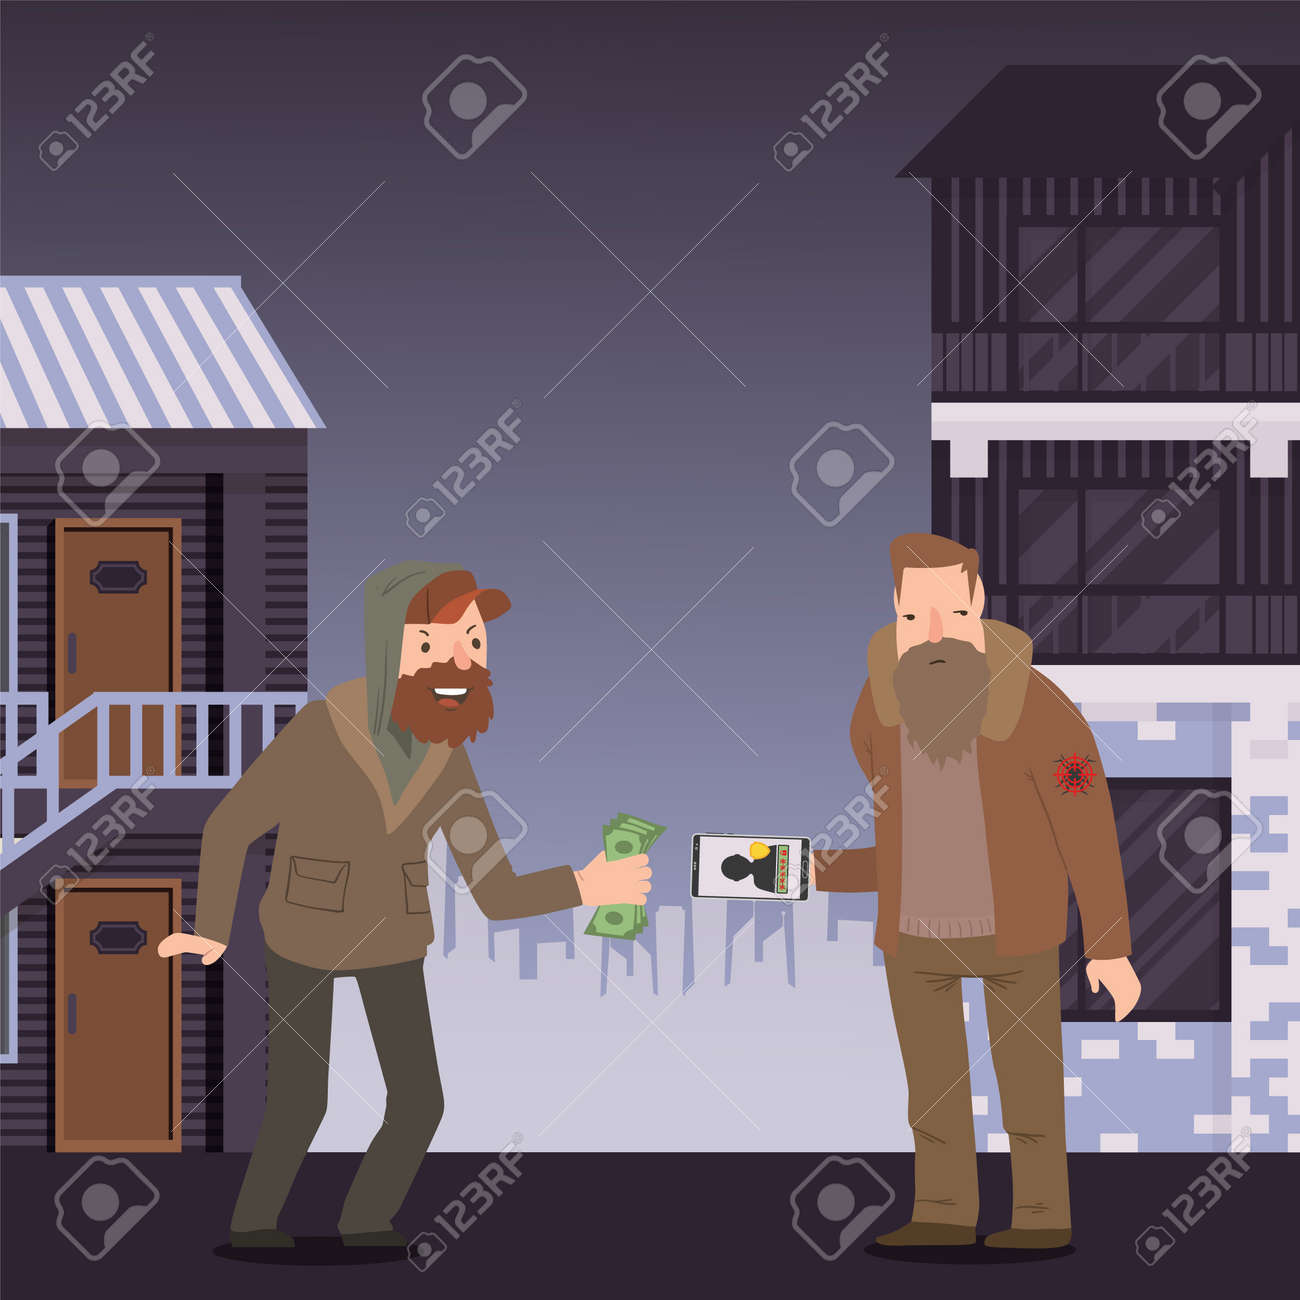 Cyber protection, character male sale personal data, hacker attack mobile phone, flat vector illustration. Unsafe network, internet, save private information. Design banner web security, - 143624760